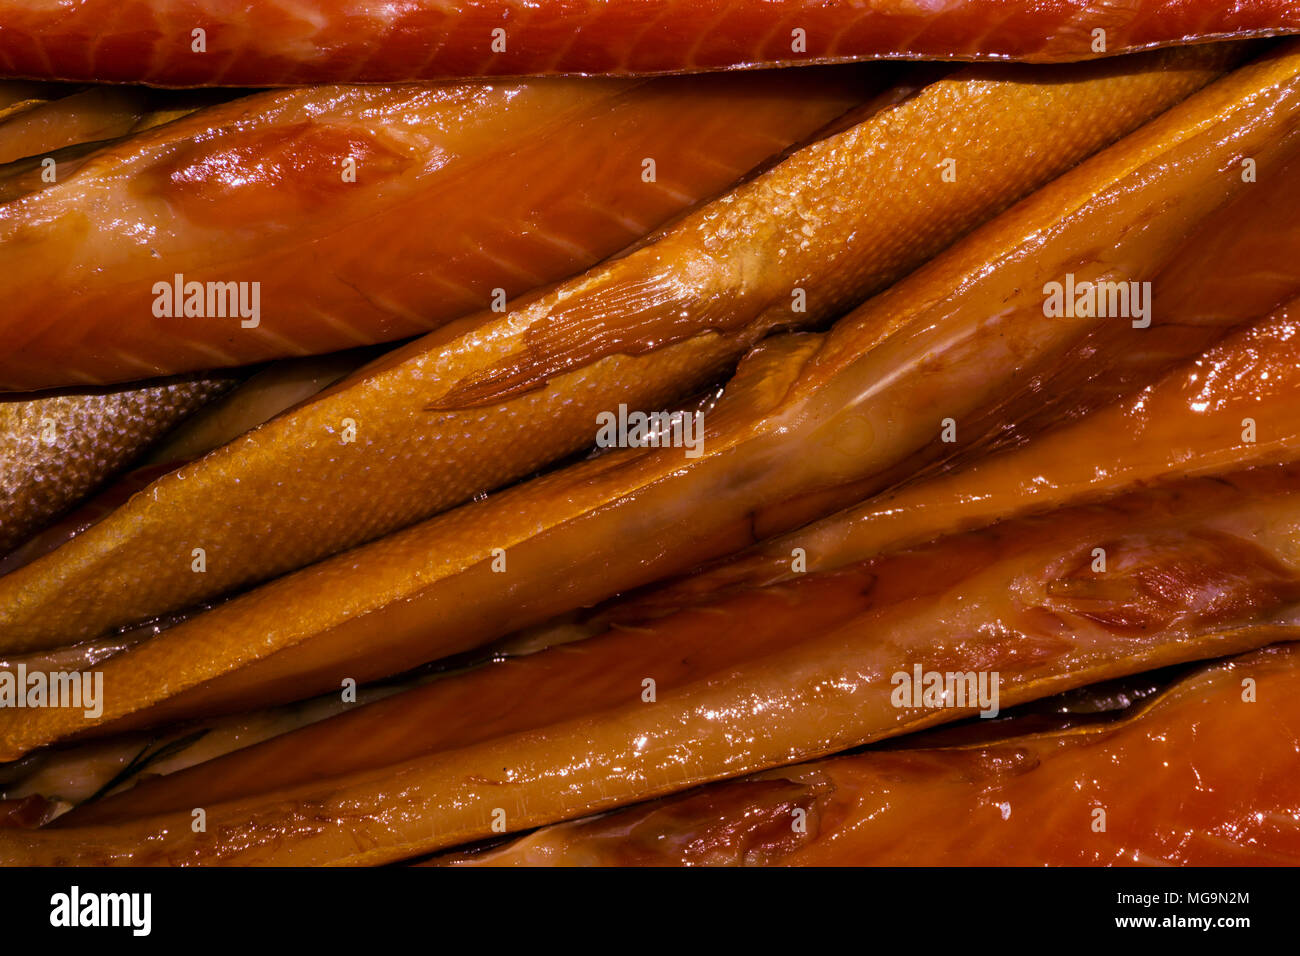 background fat golden smoked fish on the counter closeup stock